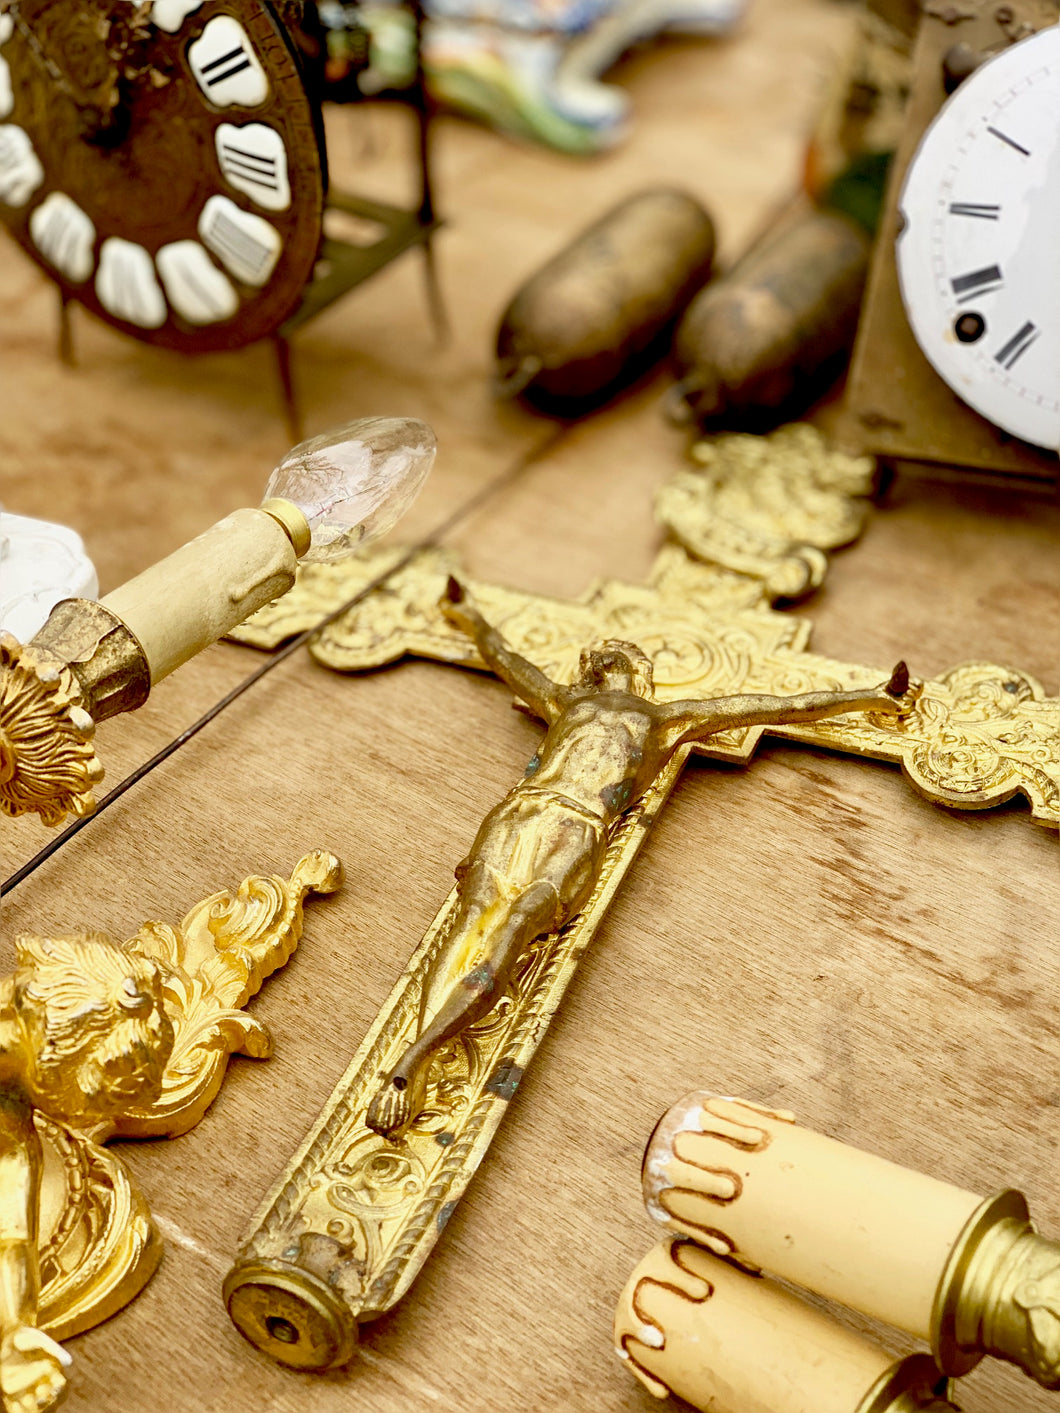 SOLD - gold / brass cross from a processional staff